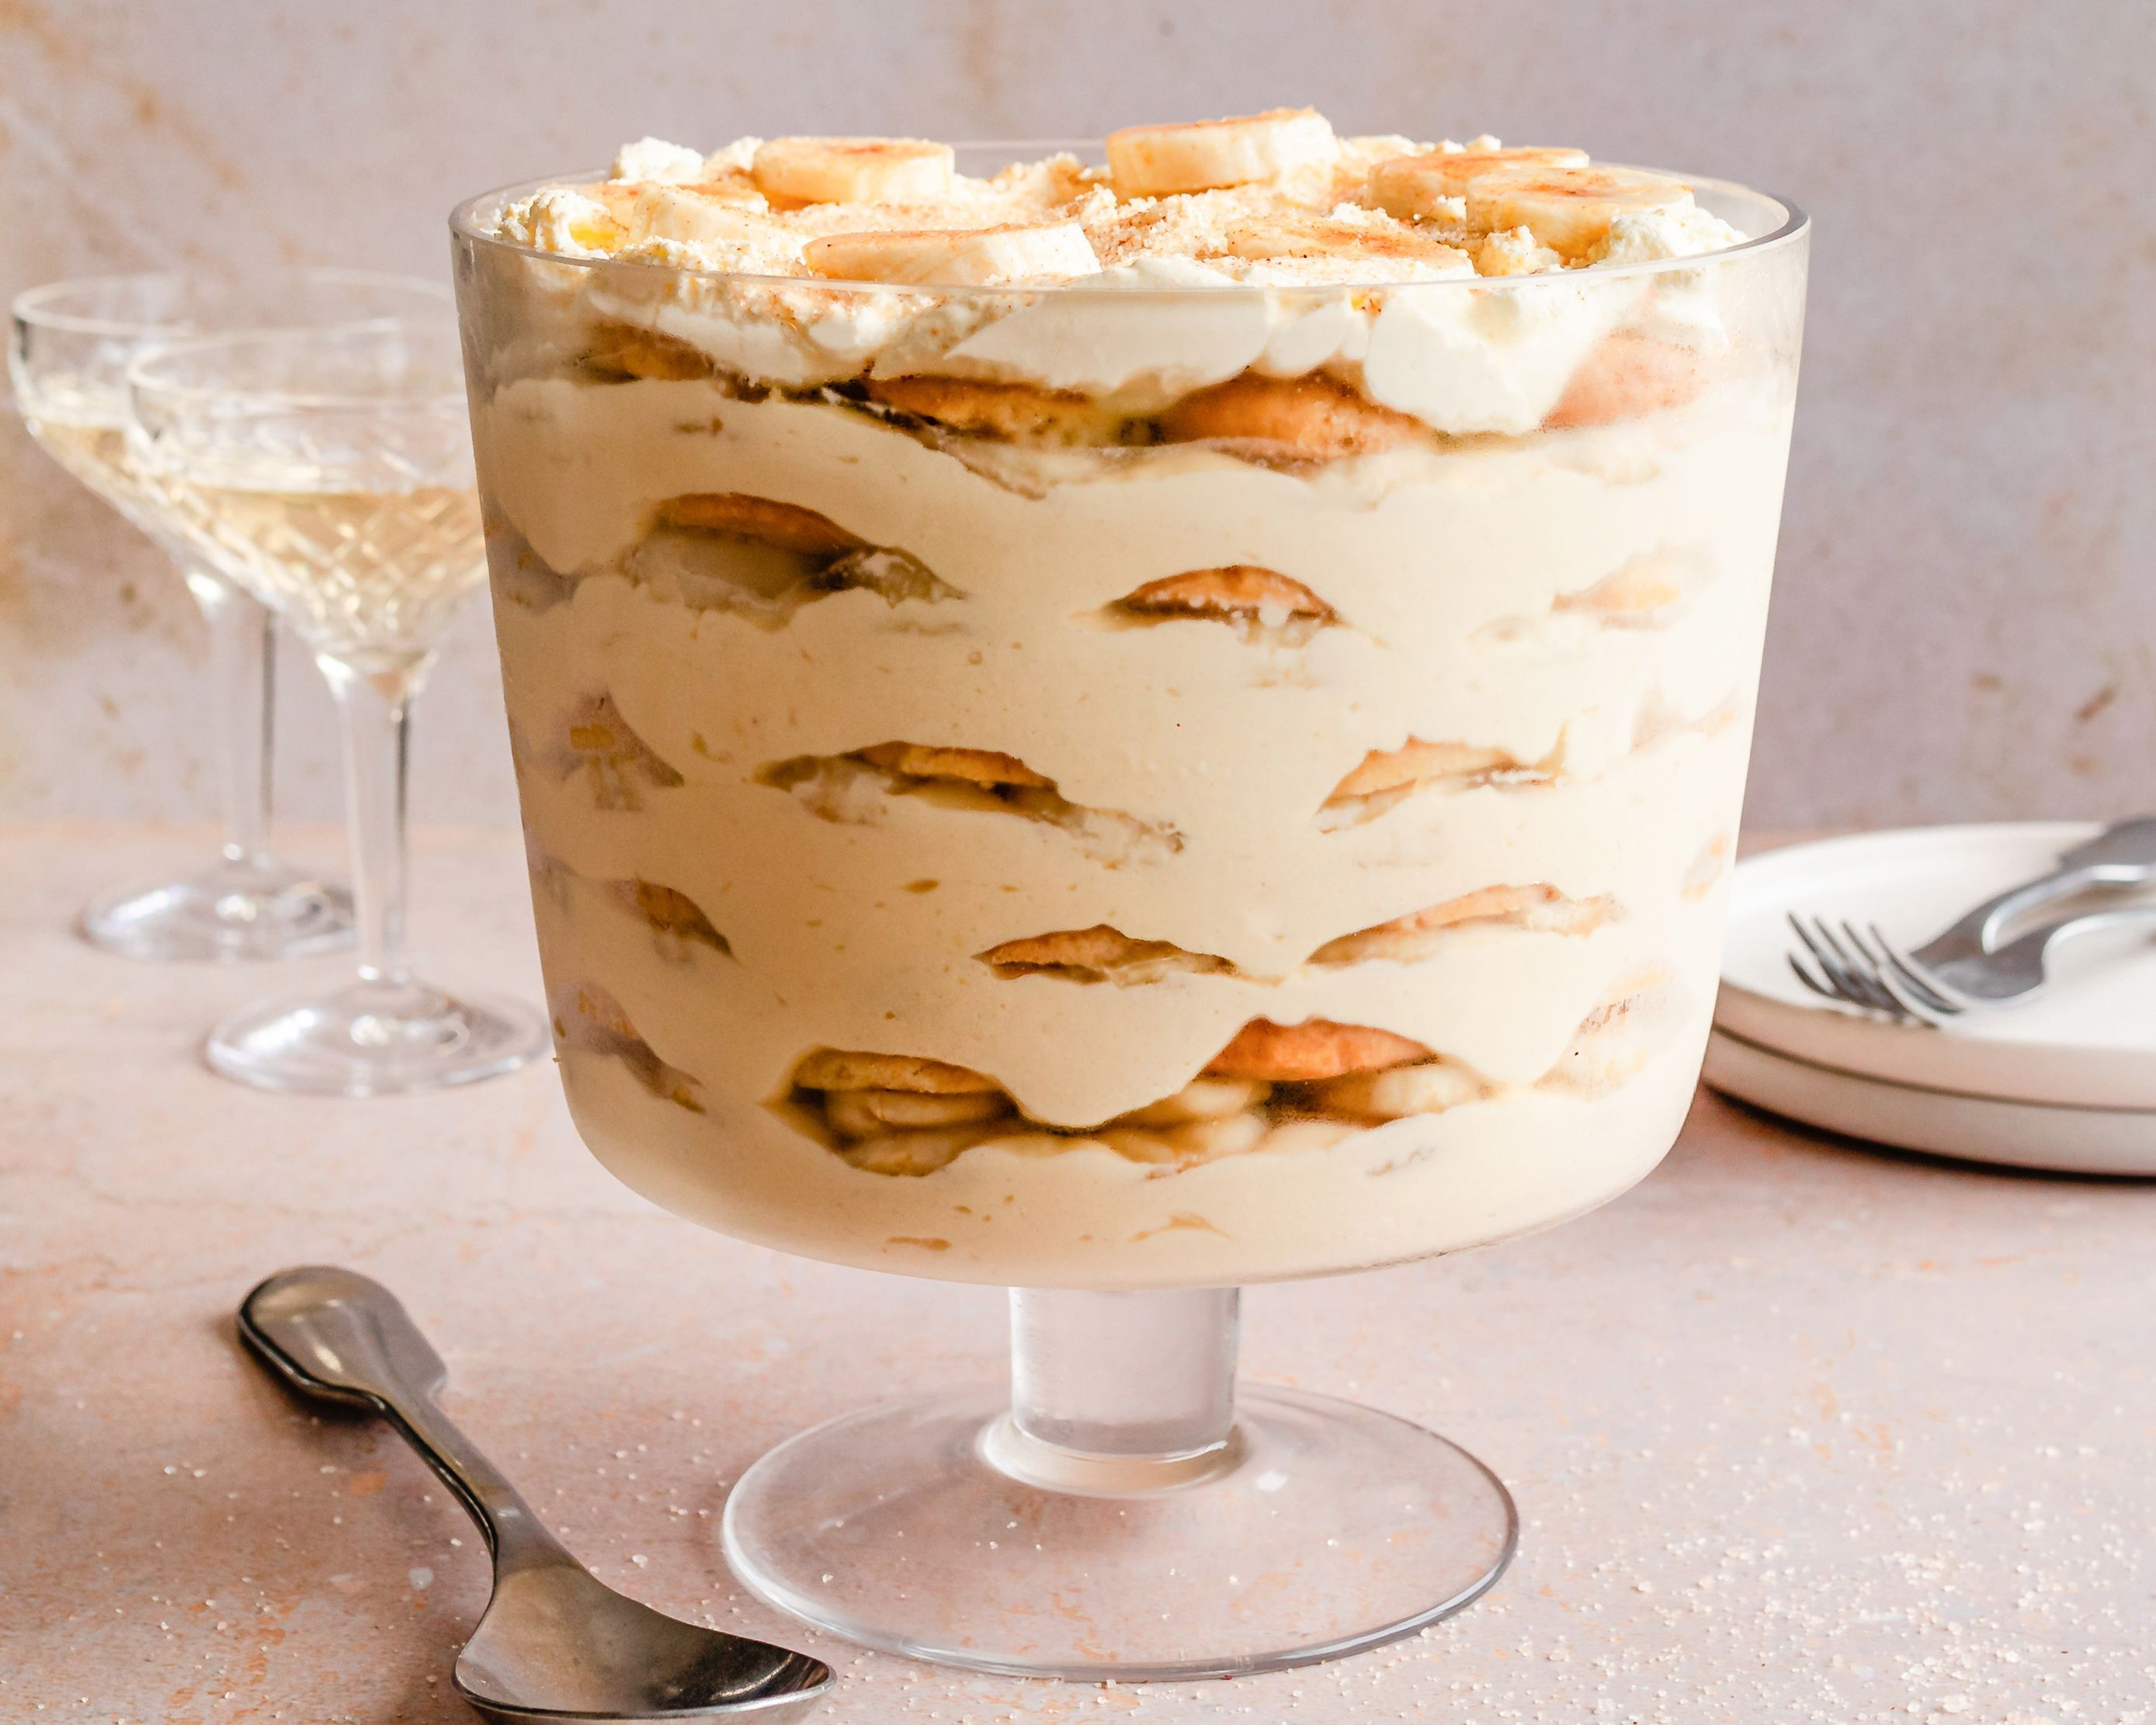 Easy Rich No Cook Banana Pudding With Vanilla Wafers Recipe In 2020 Banana Pudding No Cook Desserts Reception Desserts